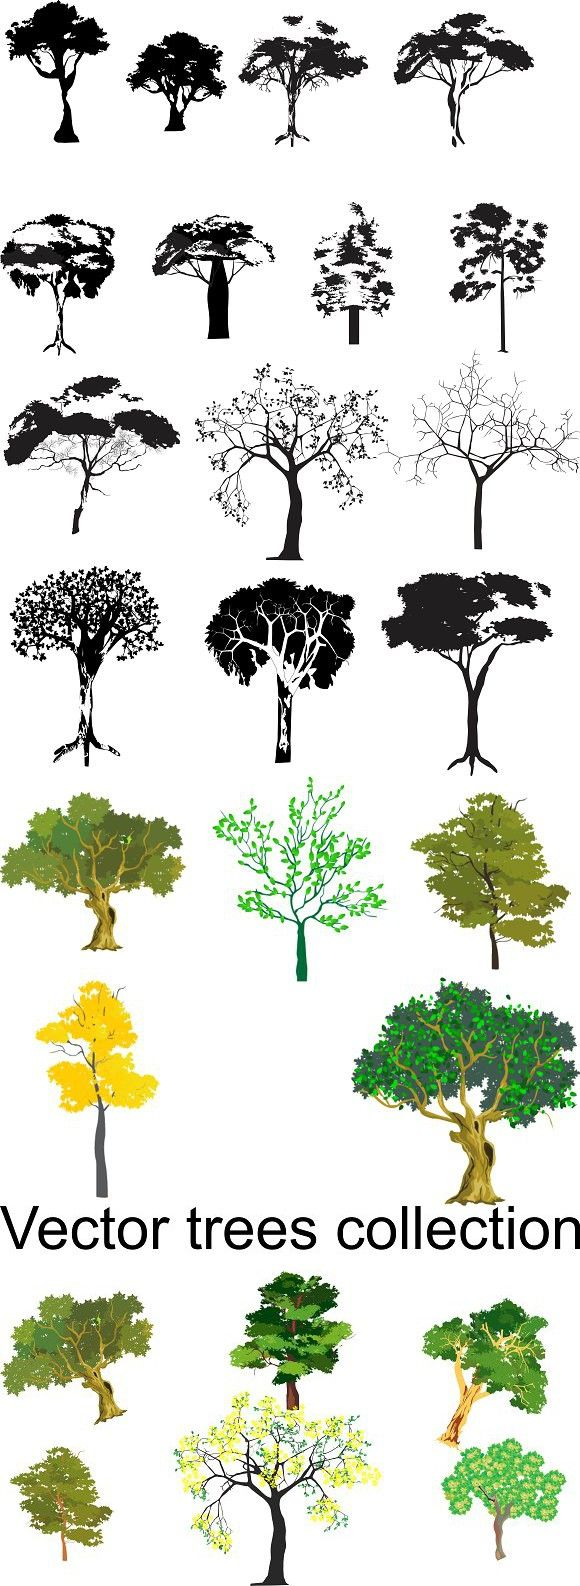 Collection of vector trees Vector trees, Tree, Vector